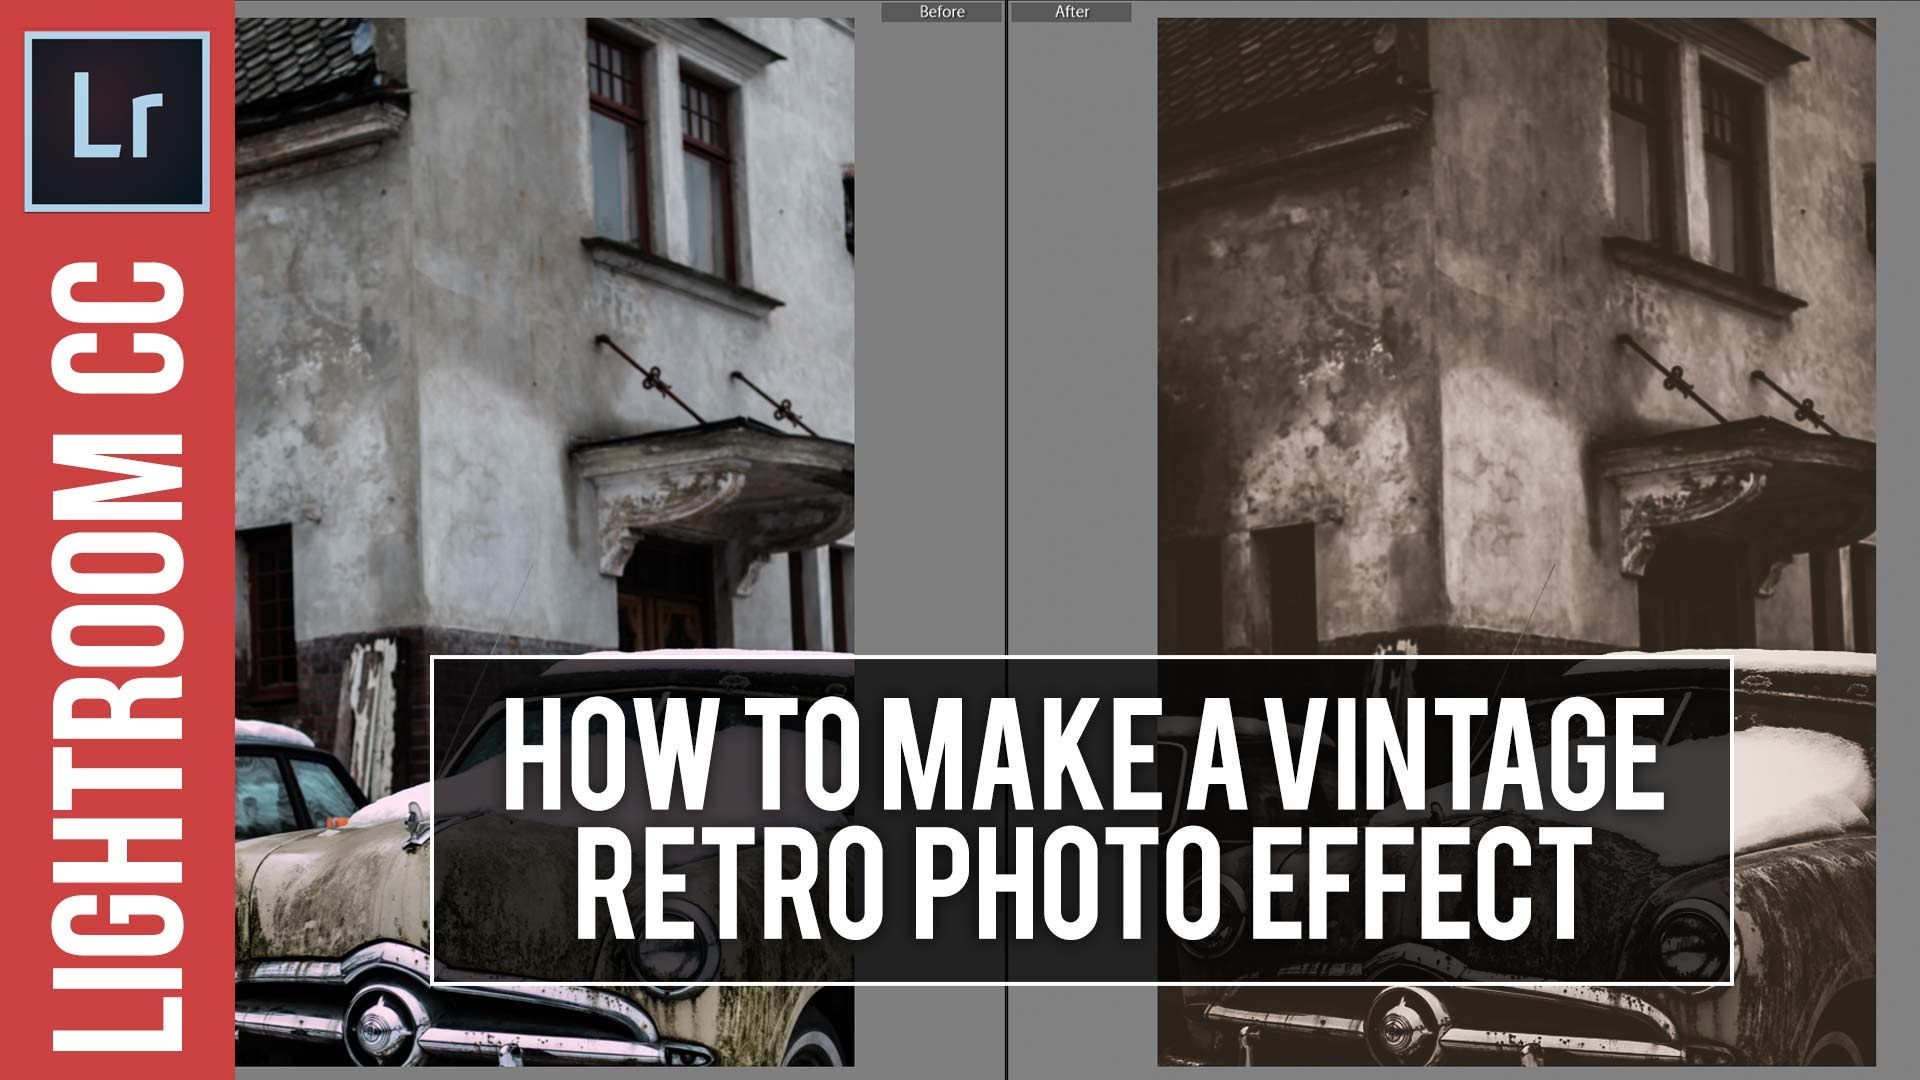 Lightroom Tutorial: Retro / Vintage Photo Effect & Free Preset